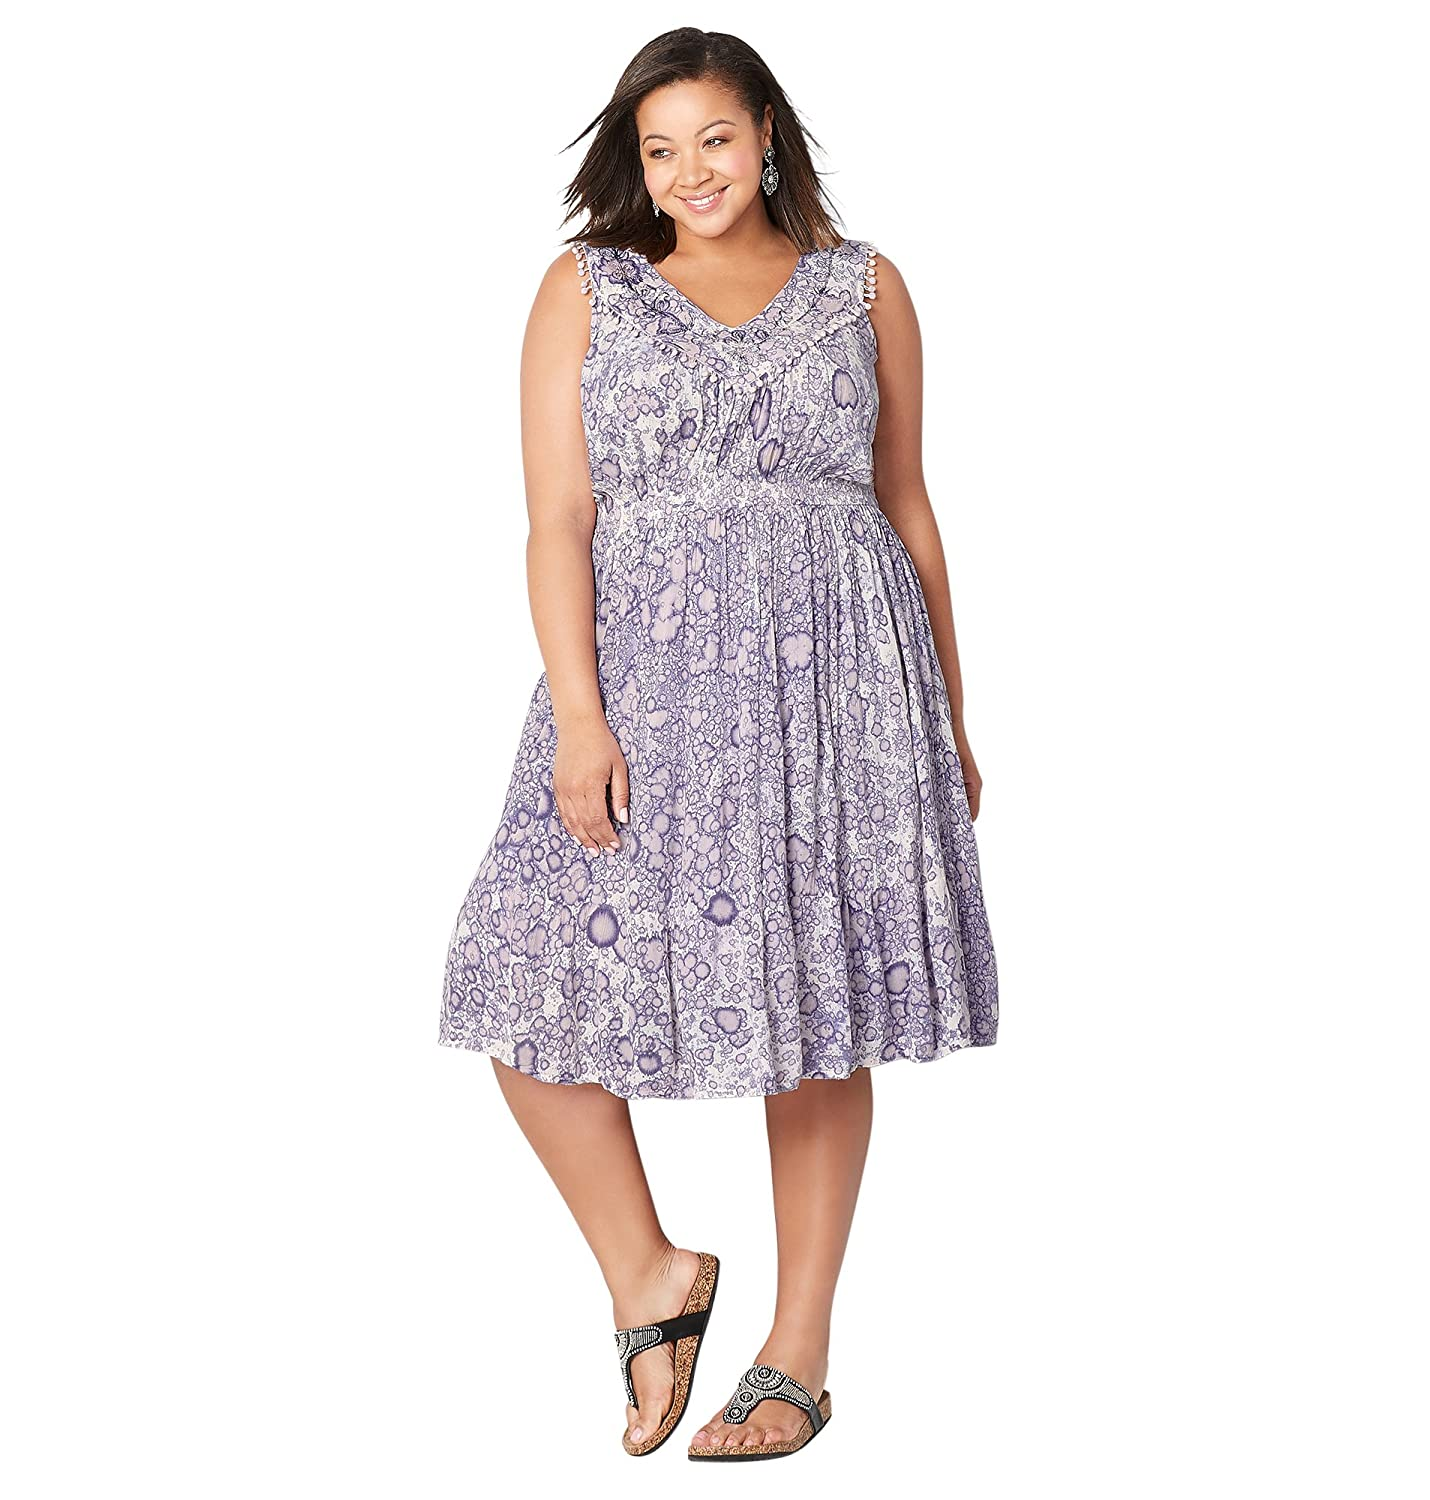 521f3406a3 Look beautiful in a dress with a unexpected splatter print allover.  Embroidered v-neckline is decorated with small pom pom trim giving this  dress a fun ...